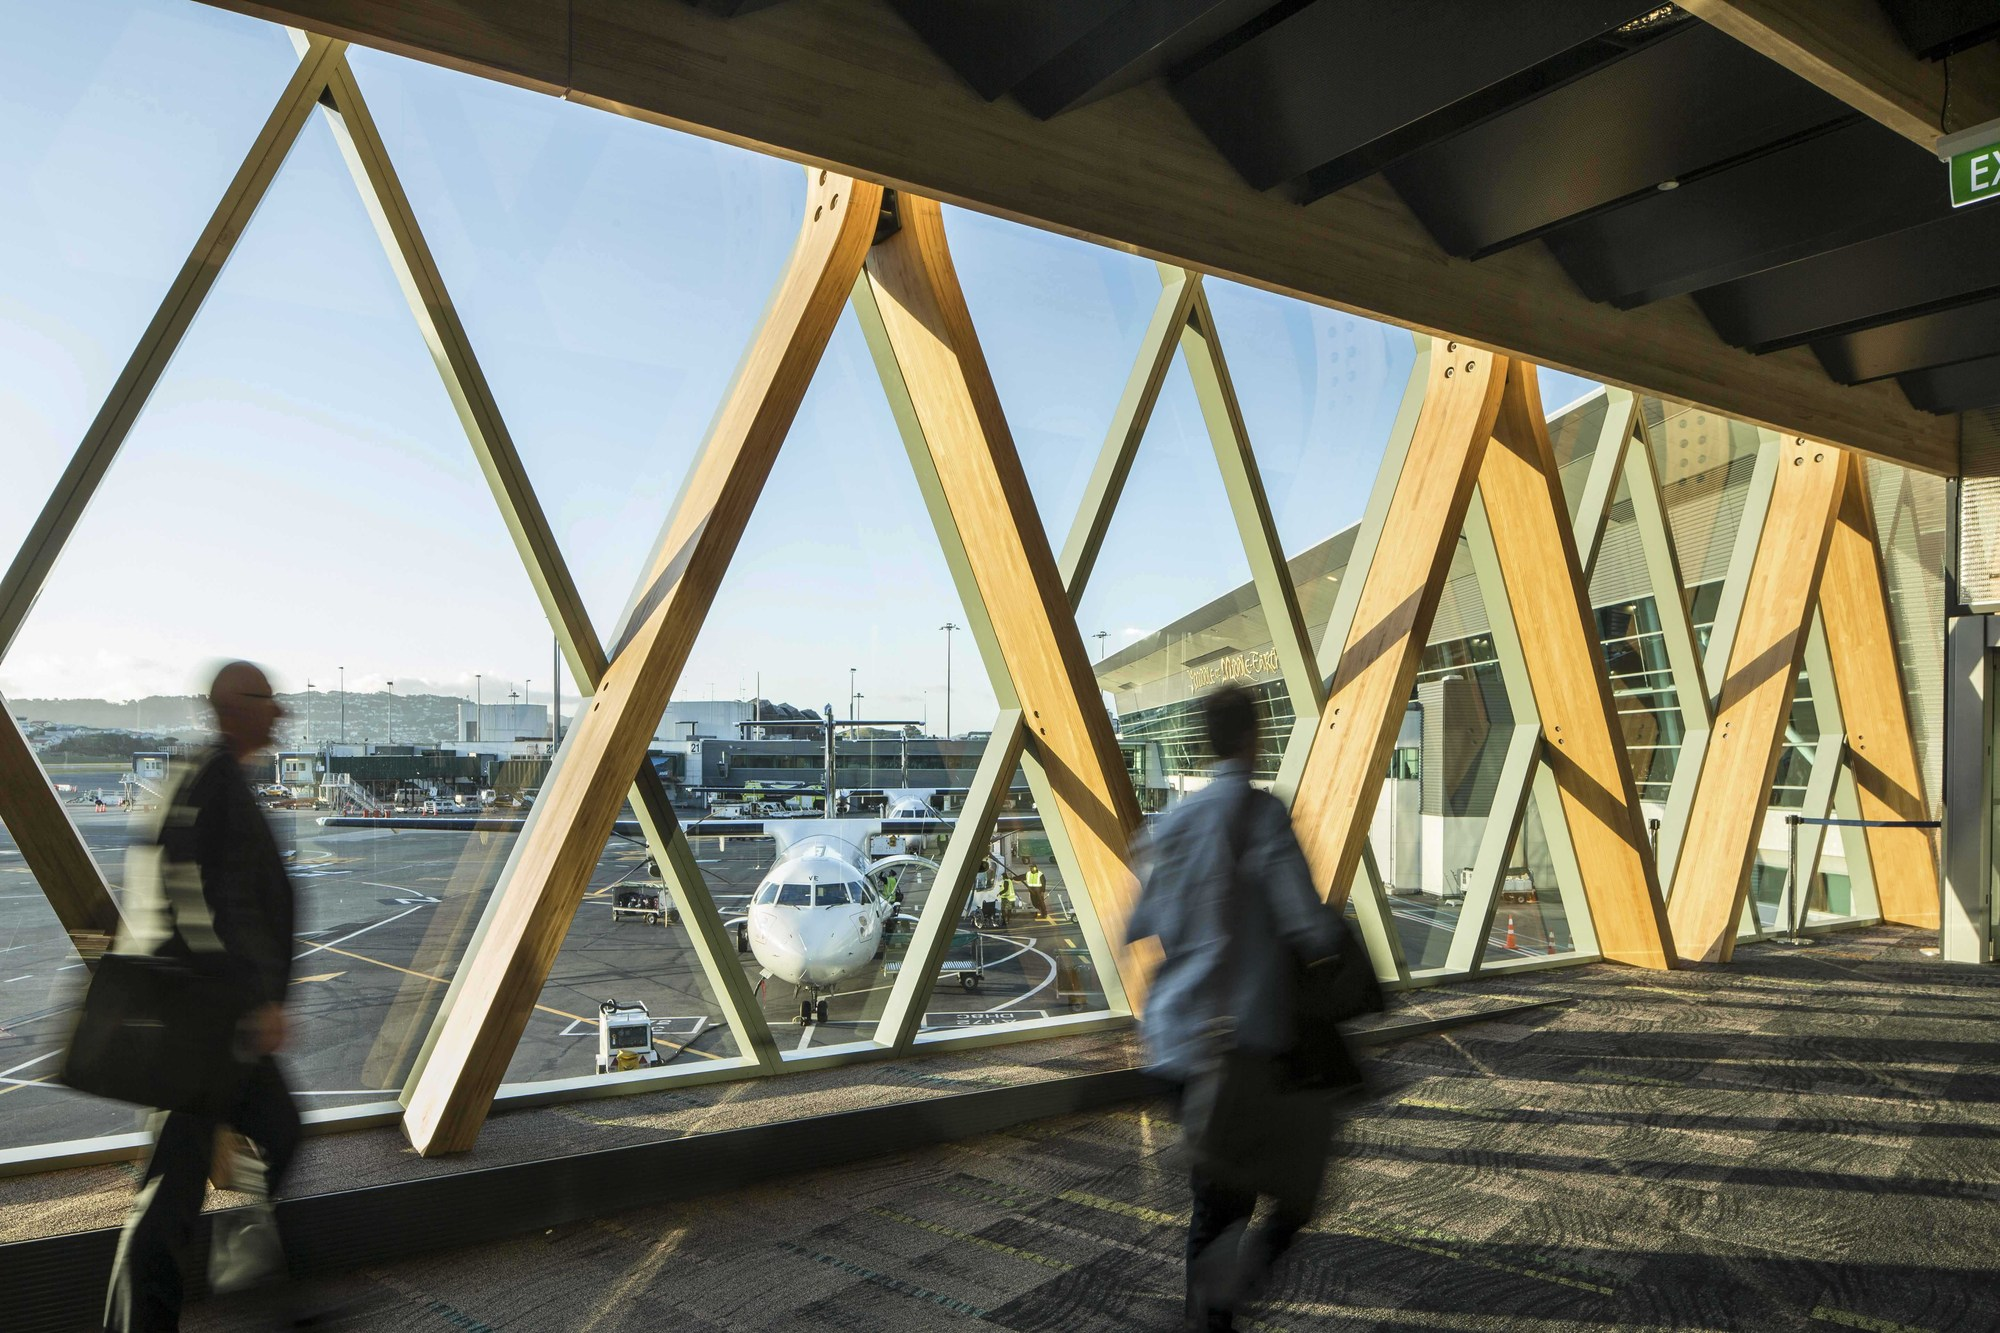 This Large Structural Frame Is Made From Laminated Wood